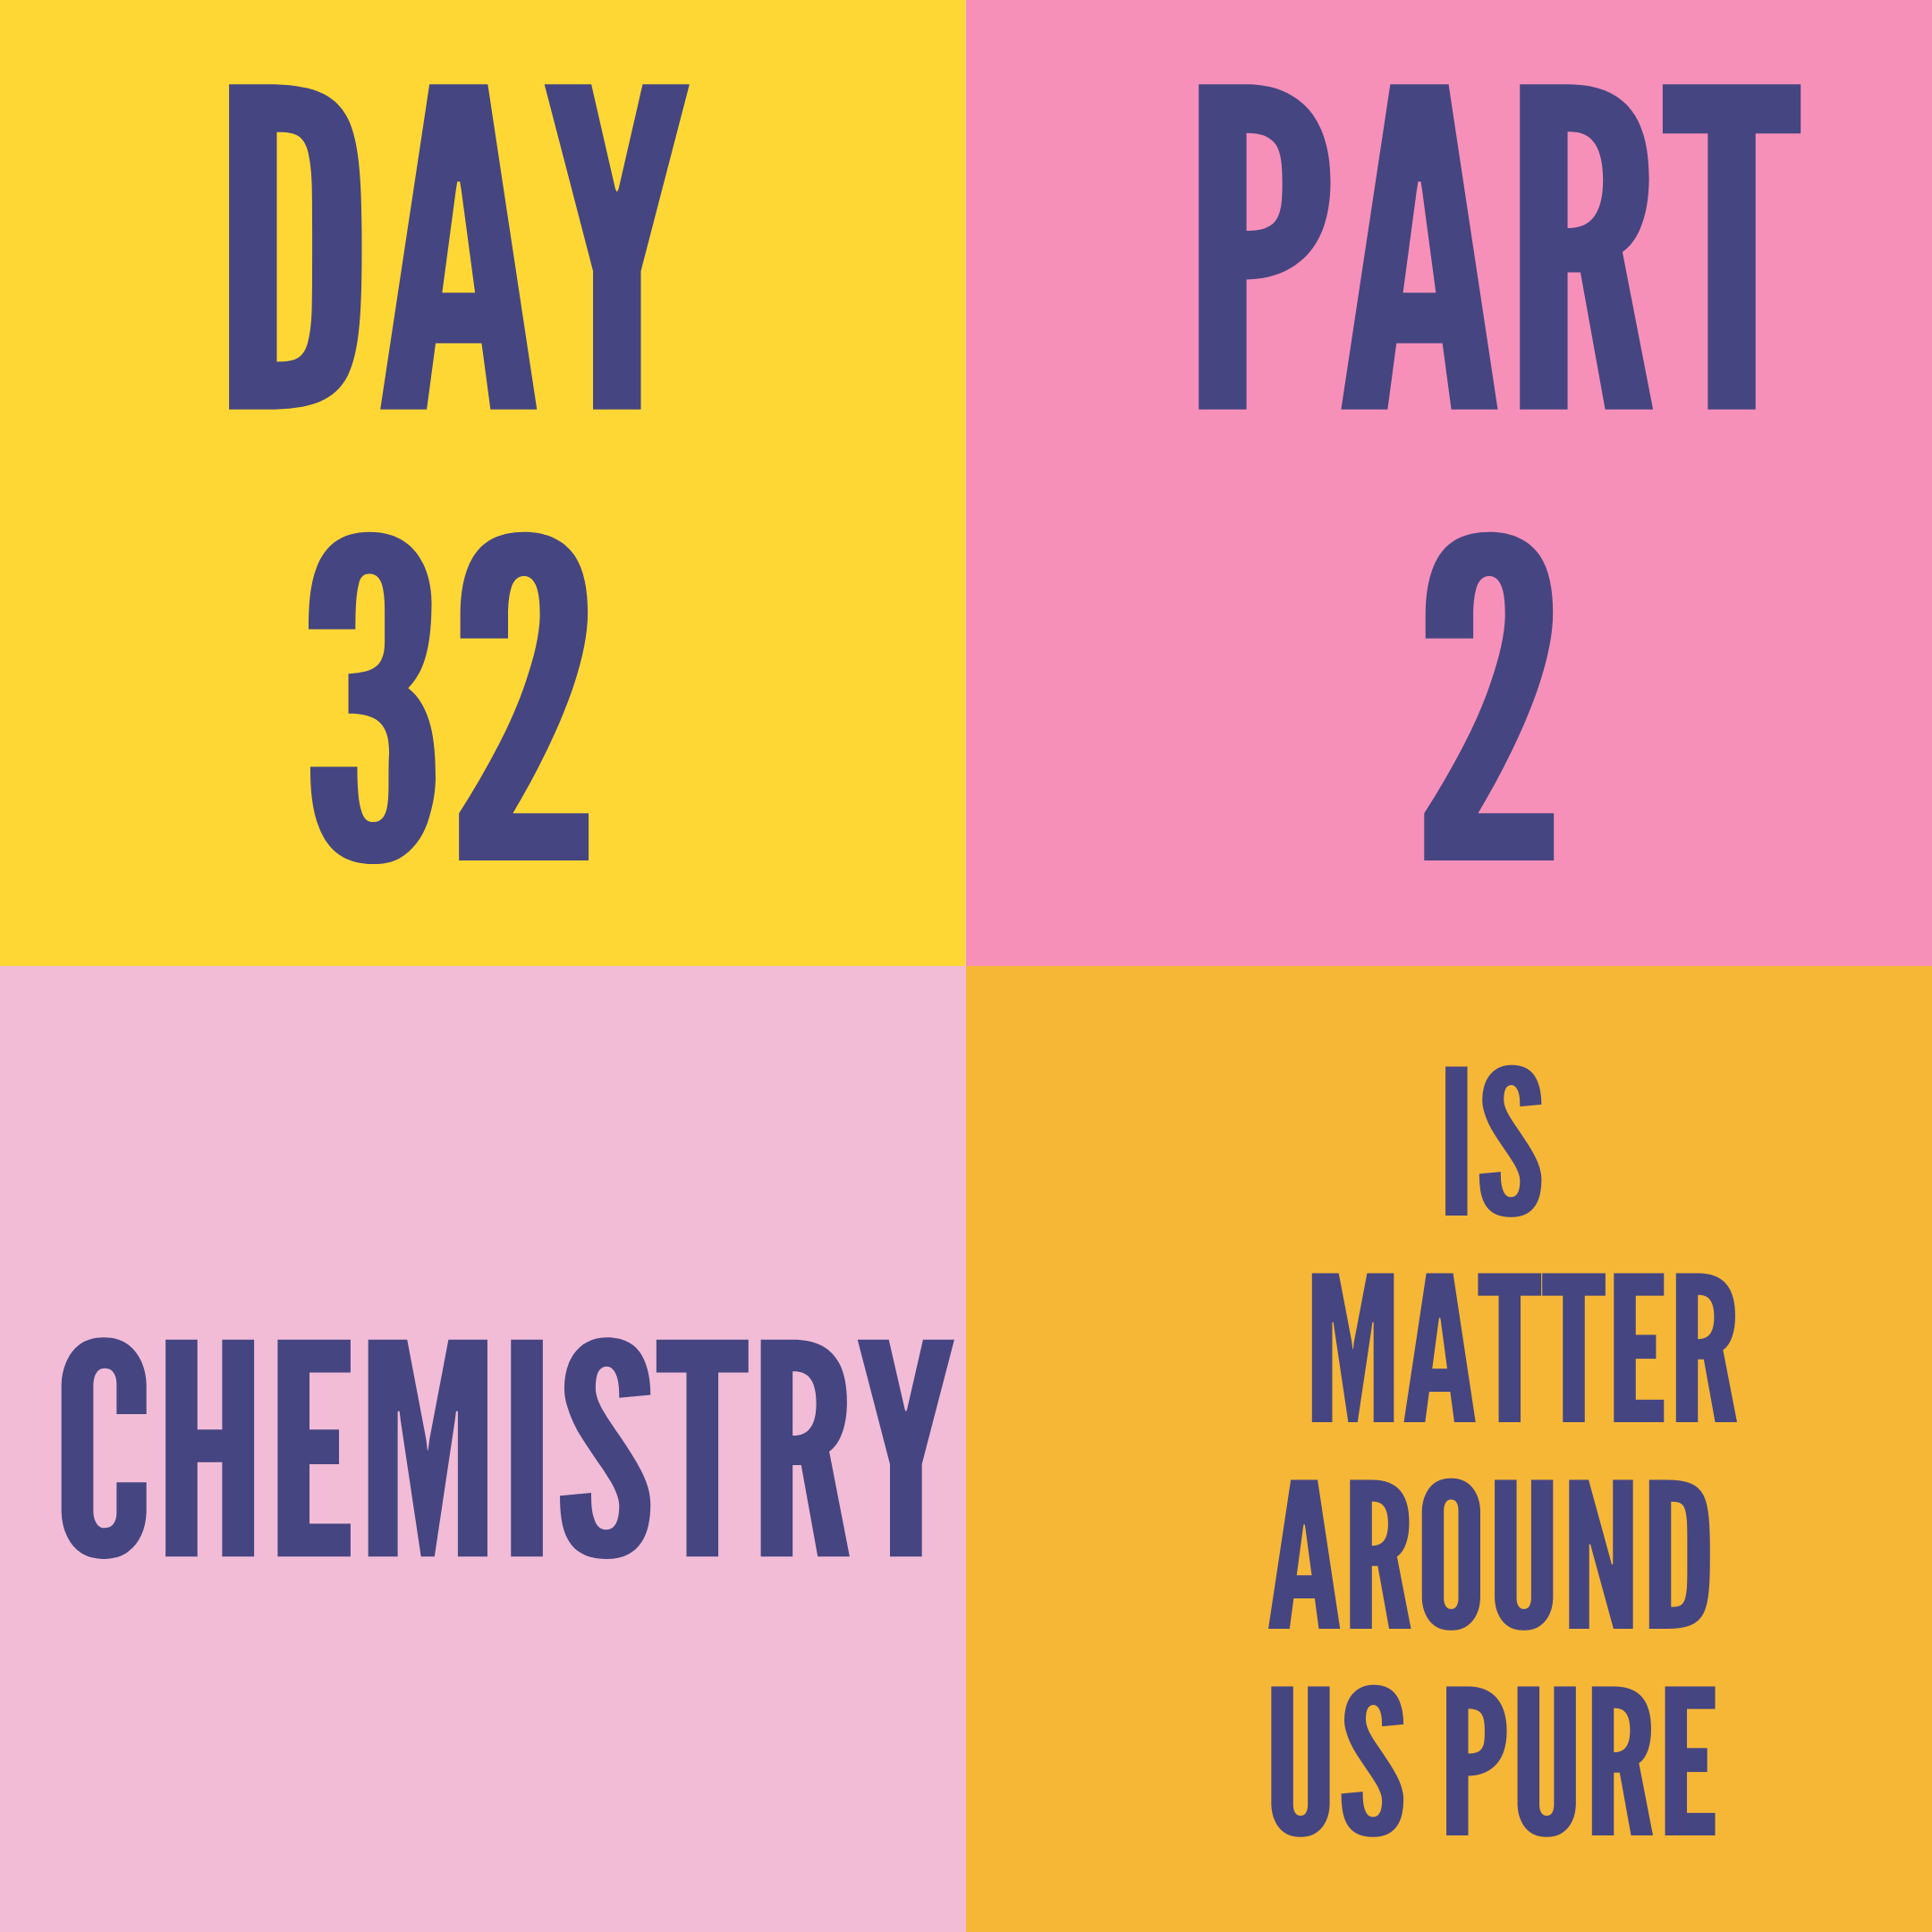 DAY-32 PART-2 IS MATTER AROUND US PURE